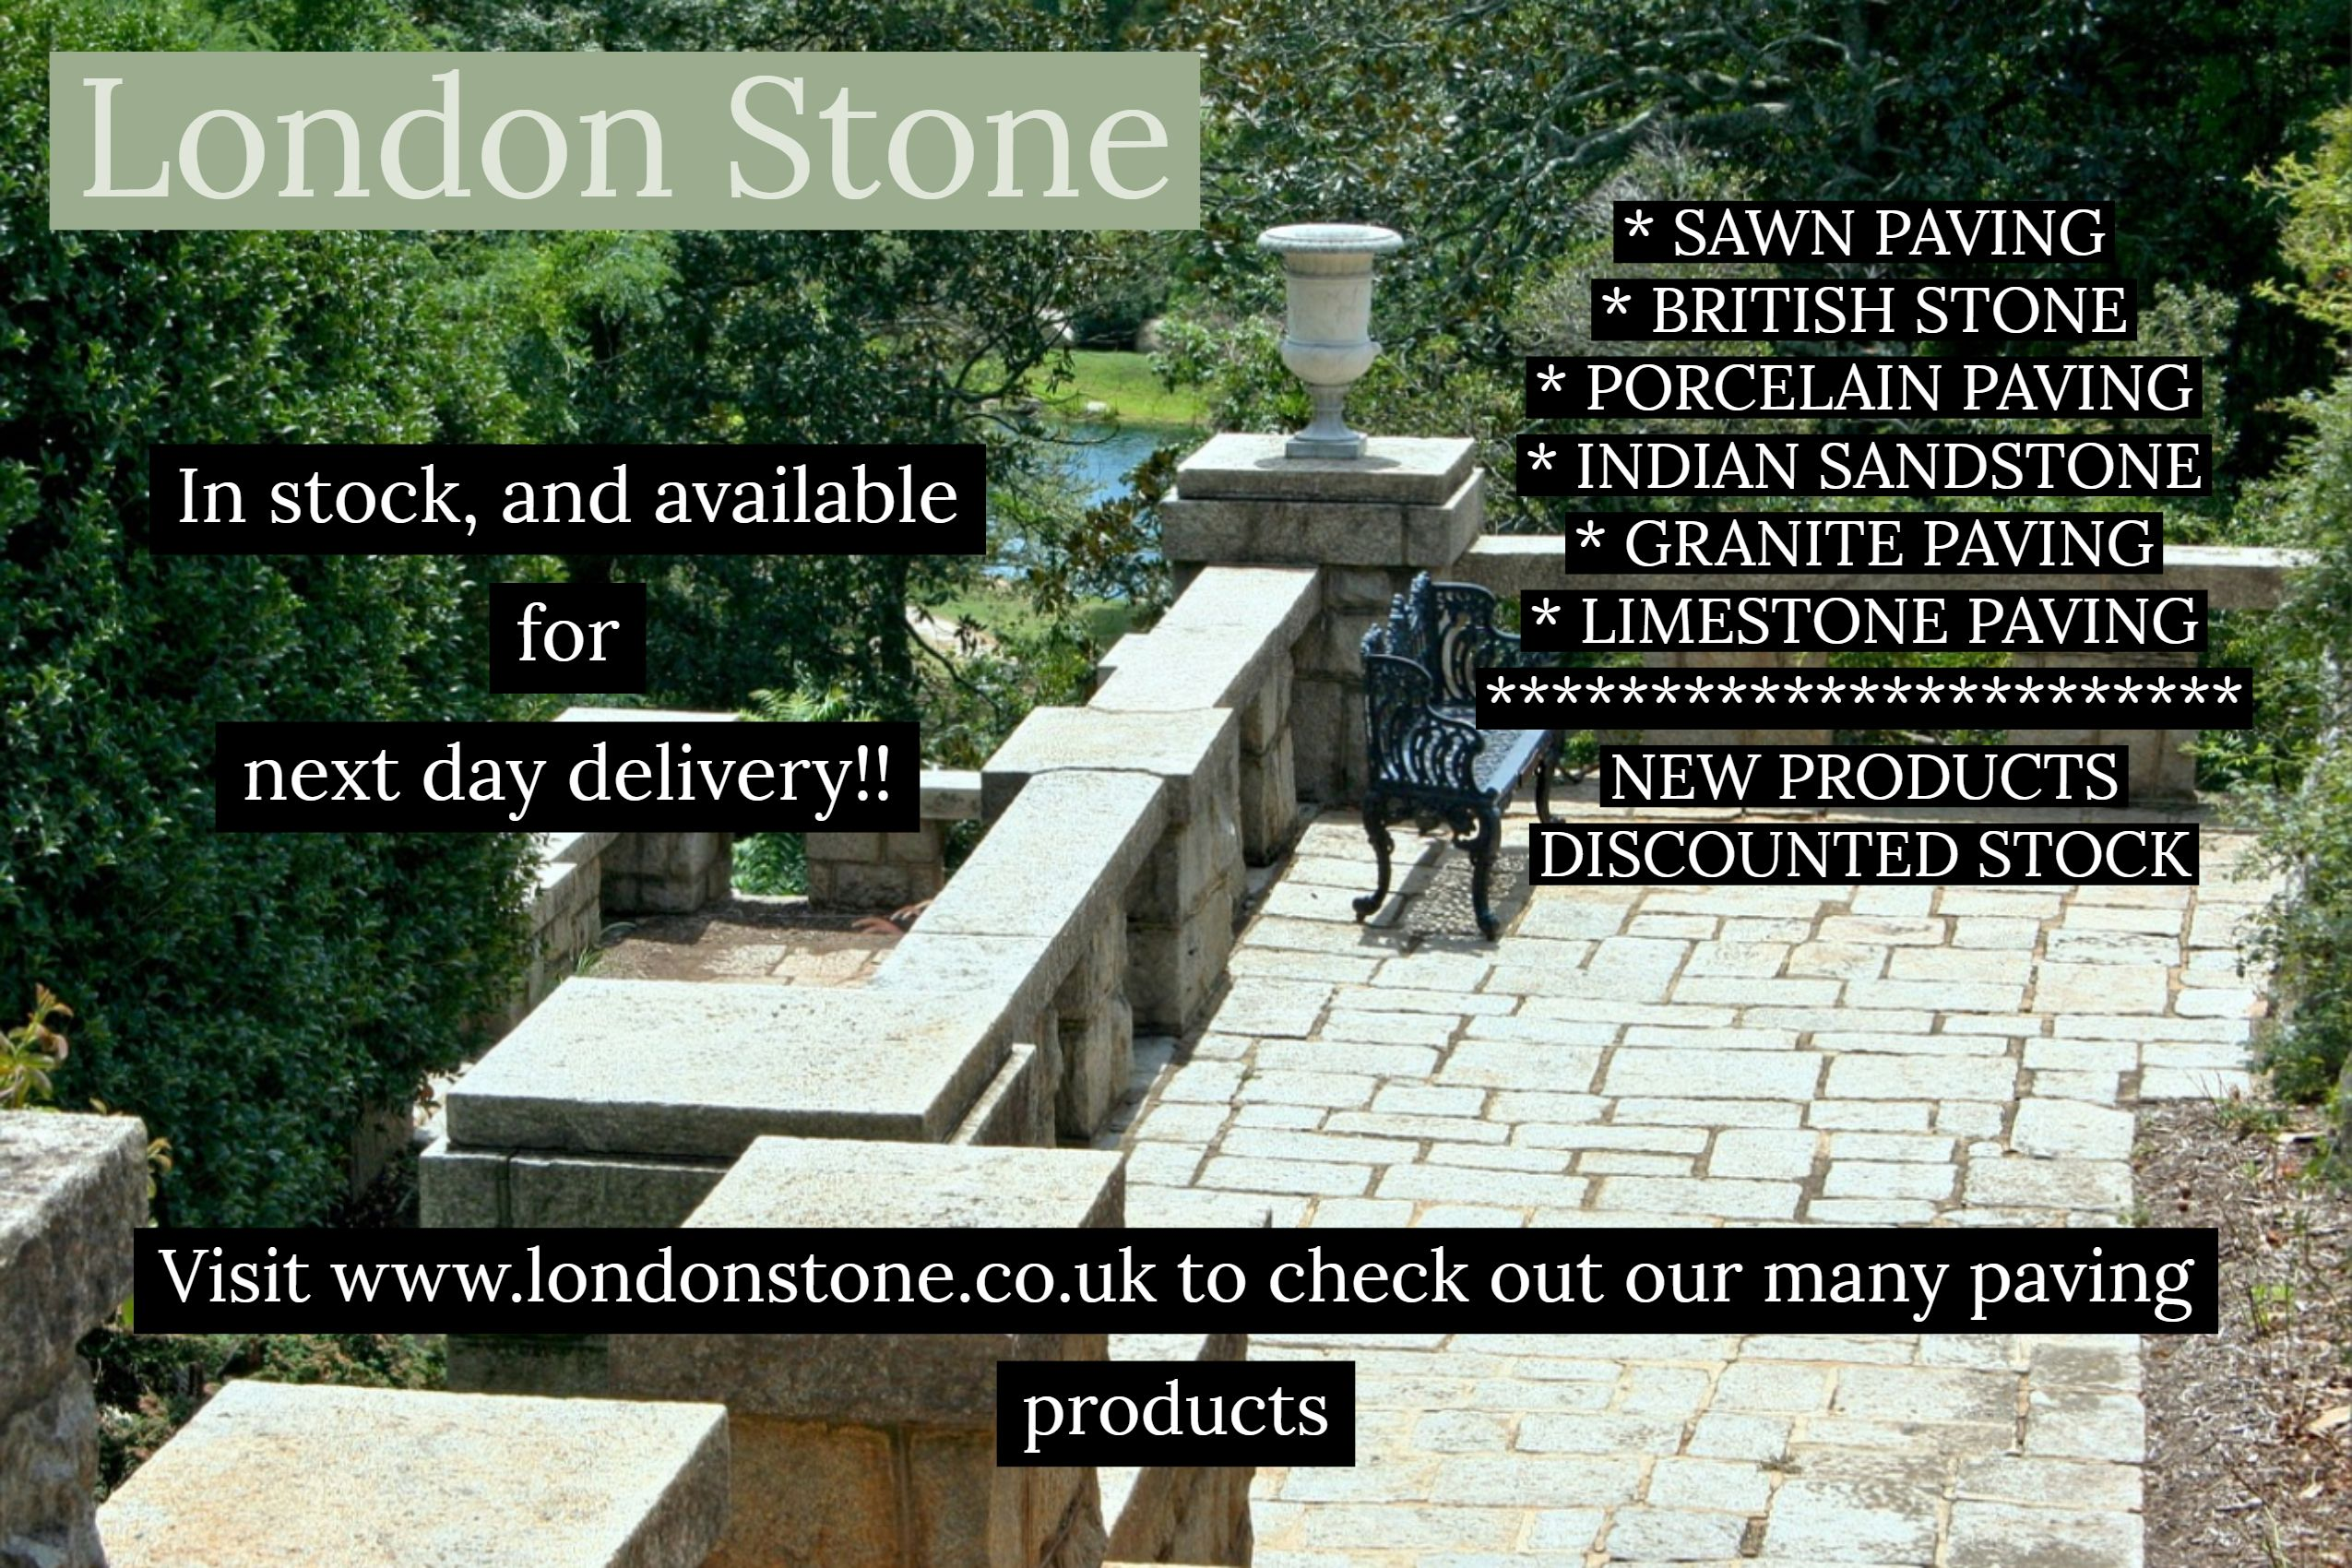 Here At London Stone We Specialise In Natural Stone Paving And Bespoke Stone Products Including Limestone Products An Garden Slabs Paving Stones Granite Paving